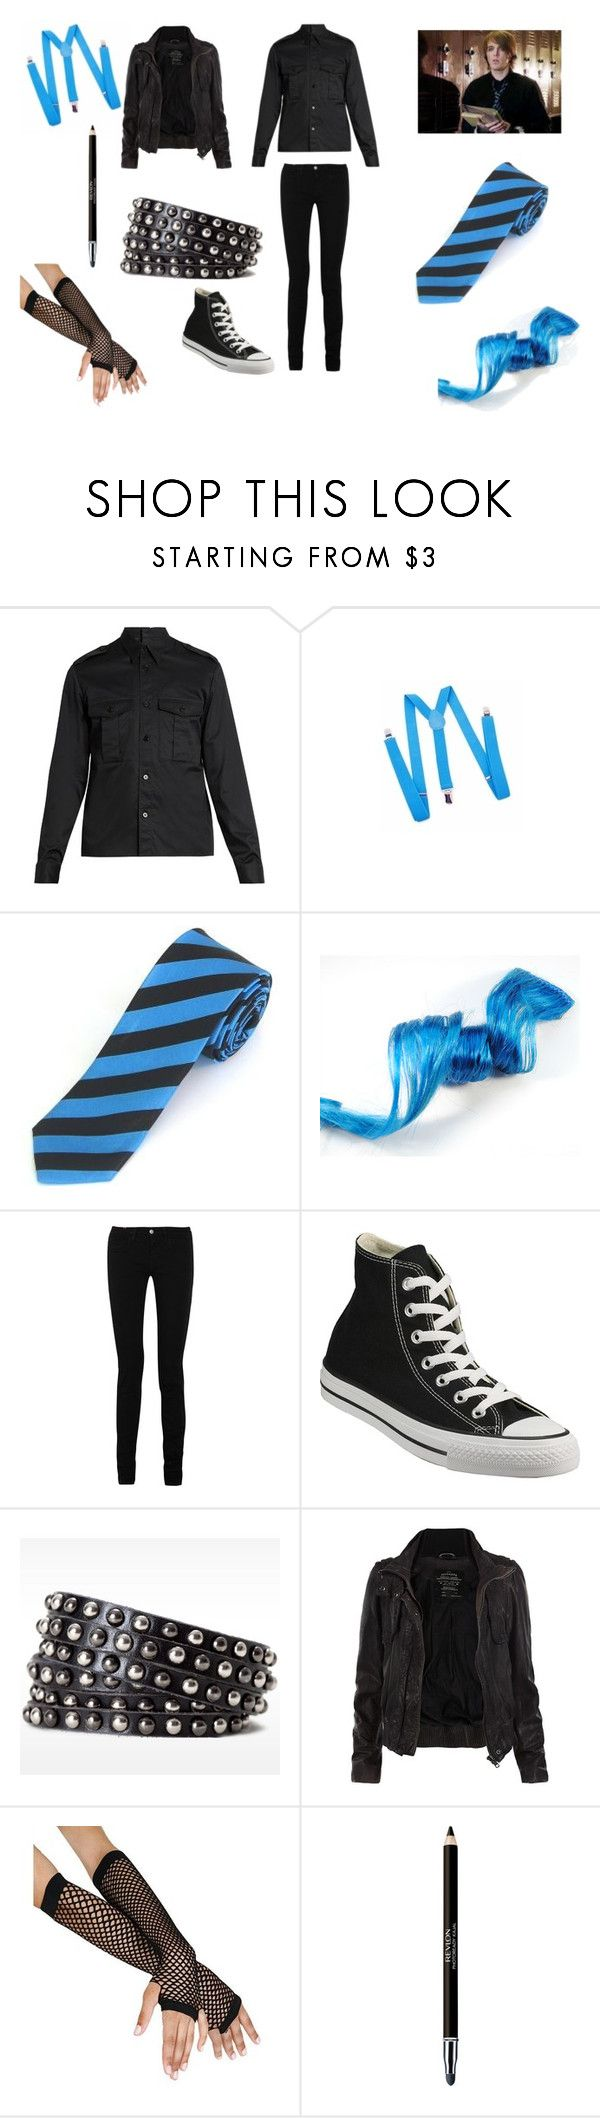 """""""Switch <3"""" by lily-poindexter ❤ liked on Polyvore featuring Maison Margiela, Notify, Converse, Linea Pelle, AllSaints and Revlon"""